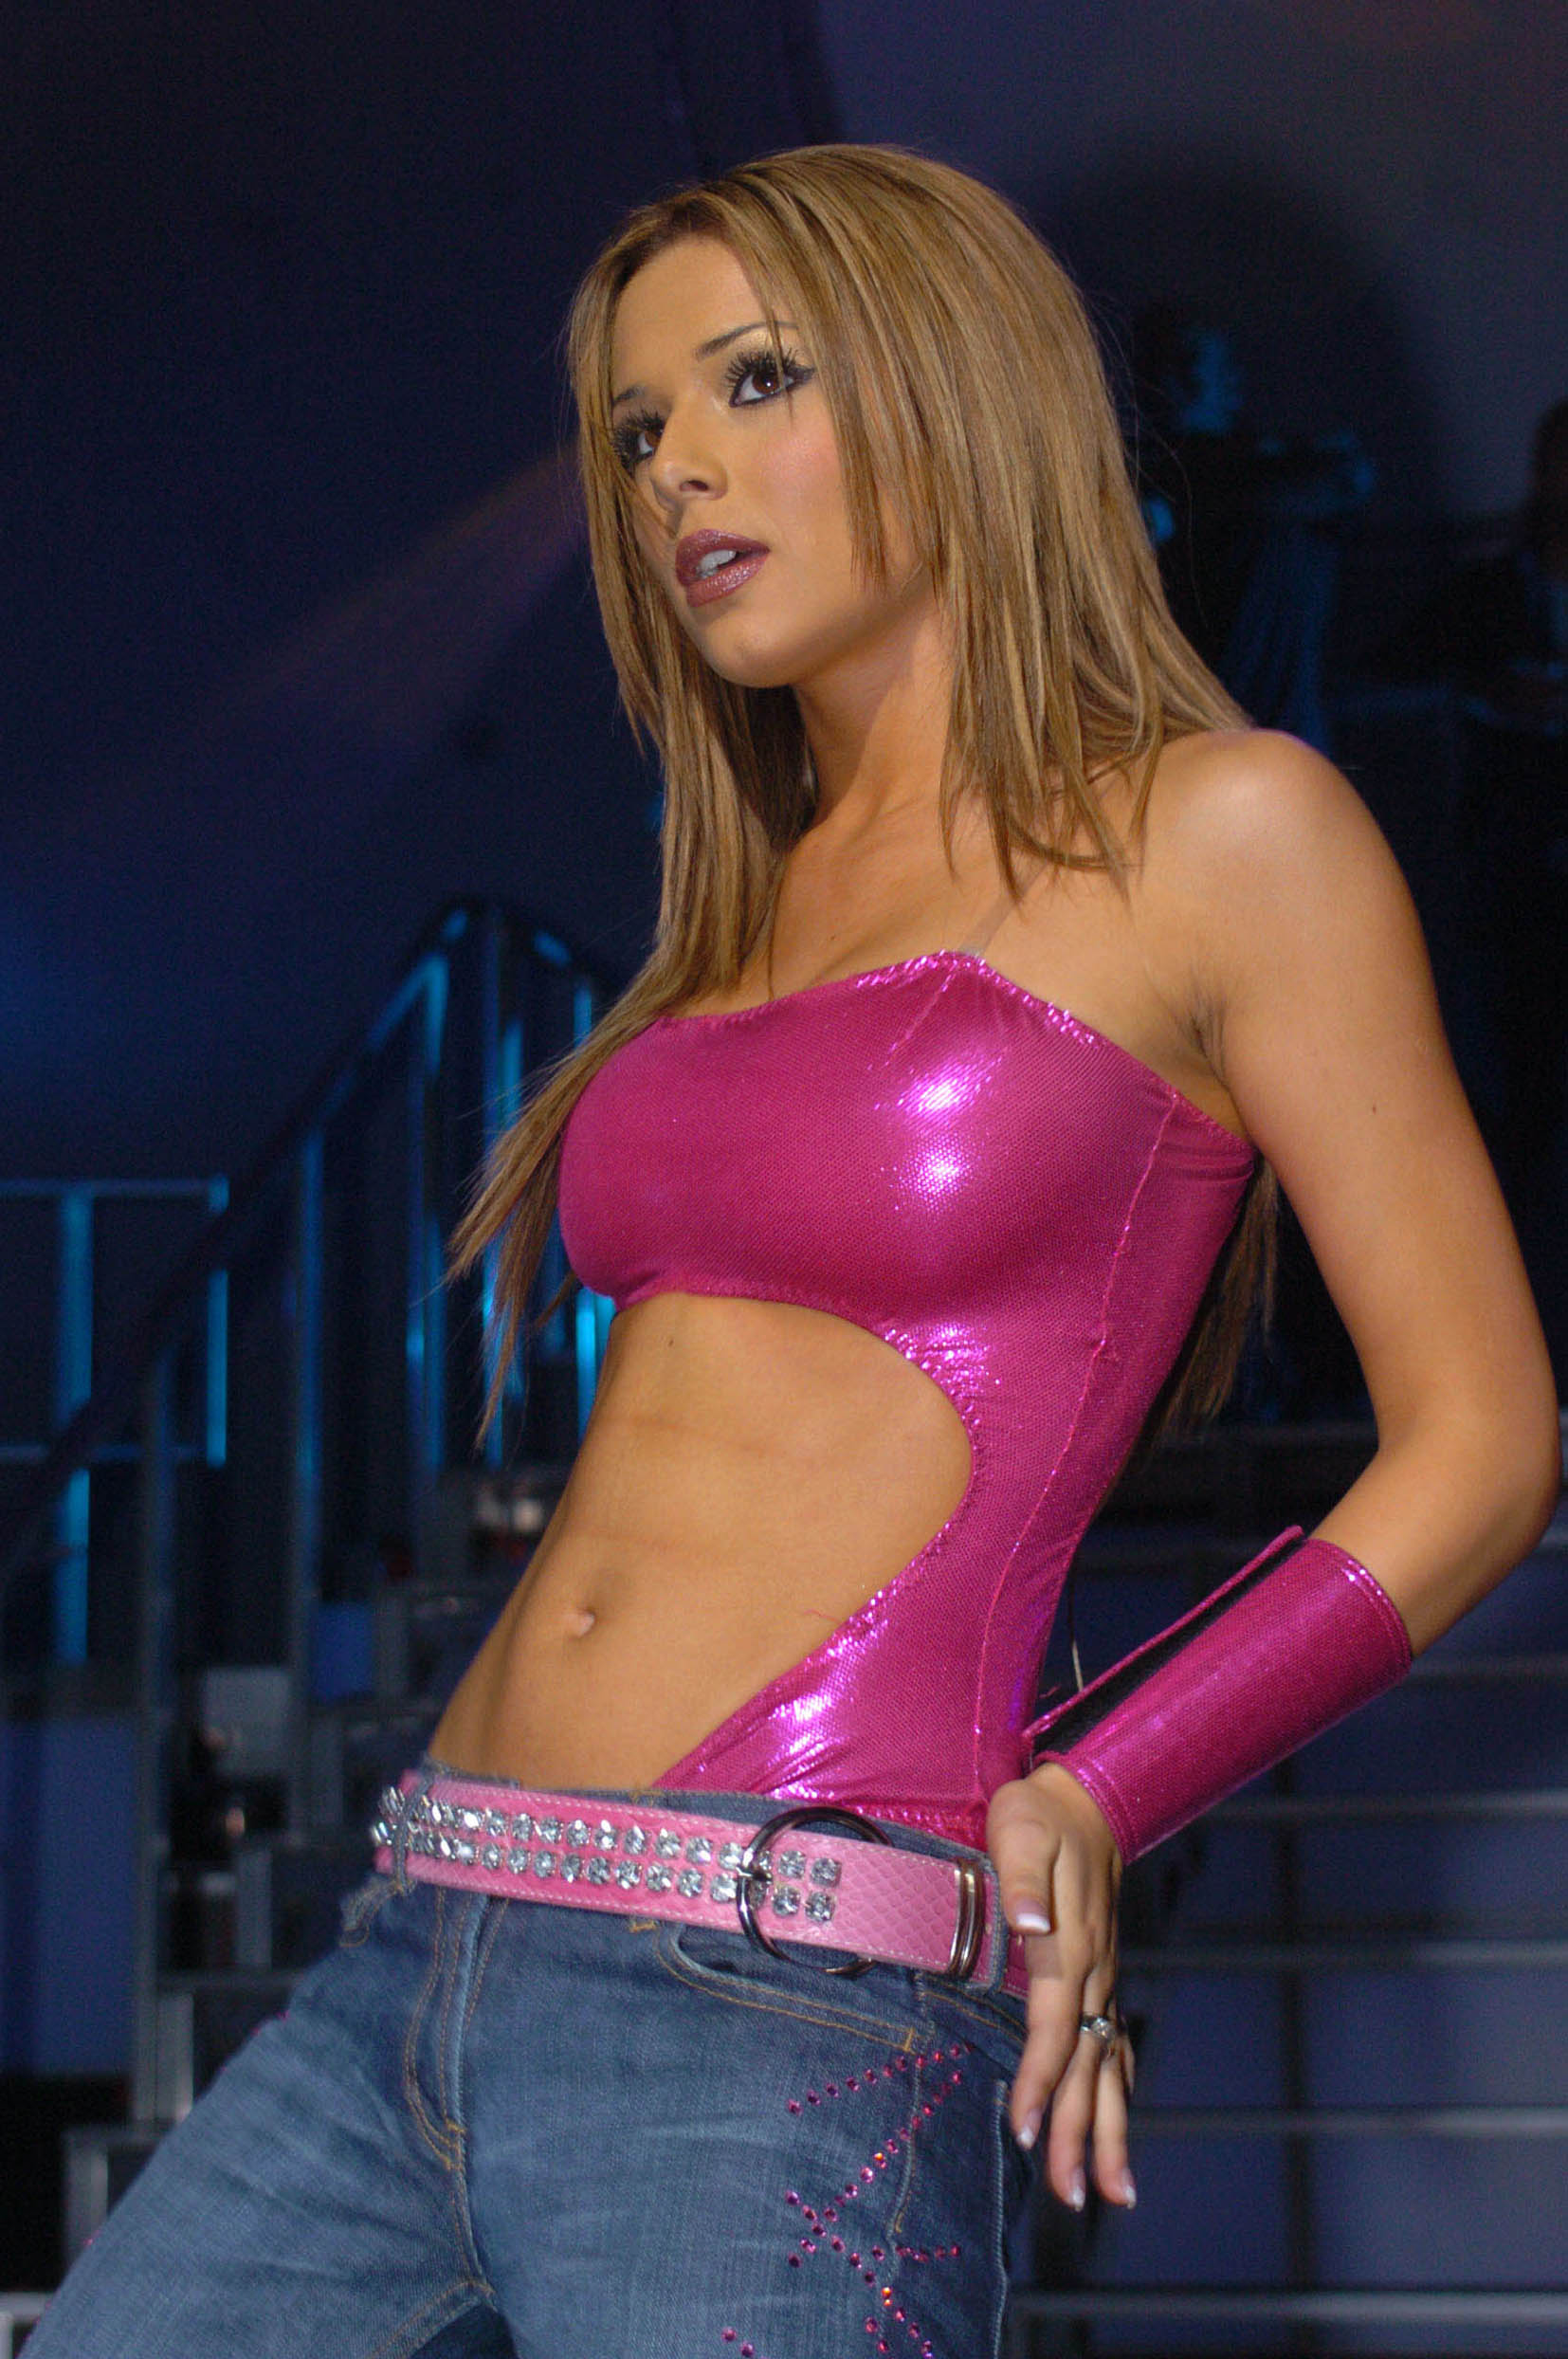 Cheryl Cole Stomach in a hot pink shirt